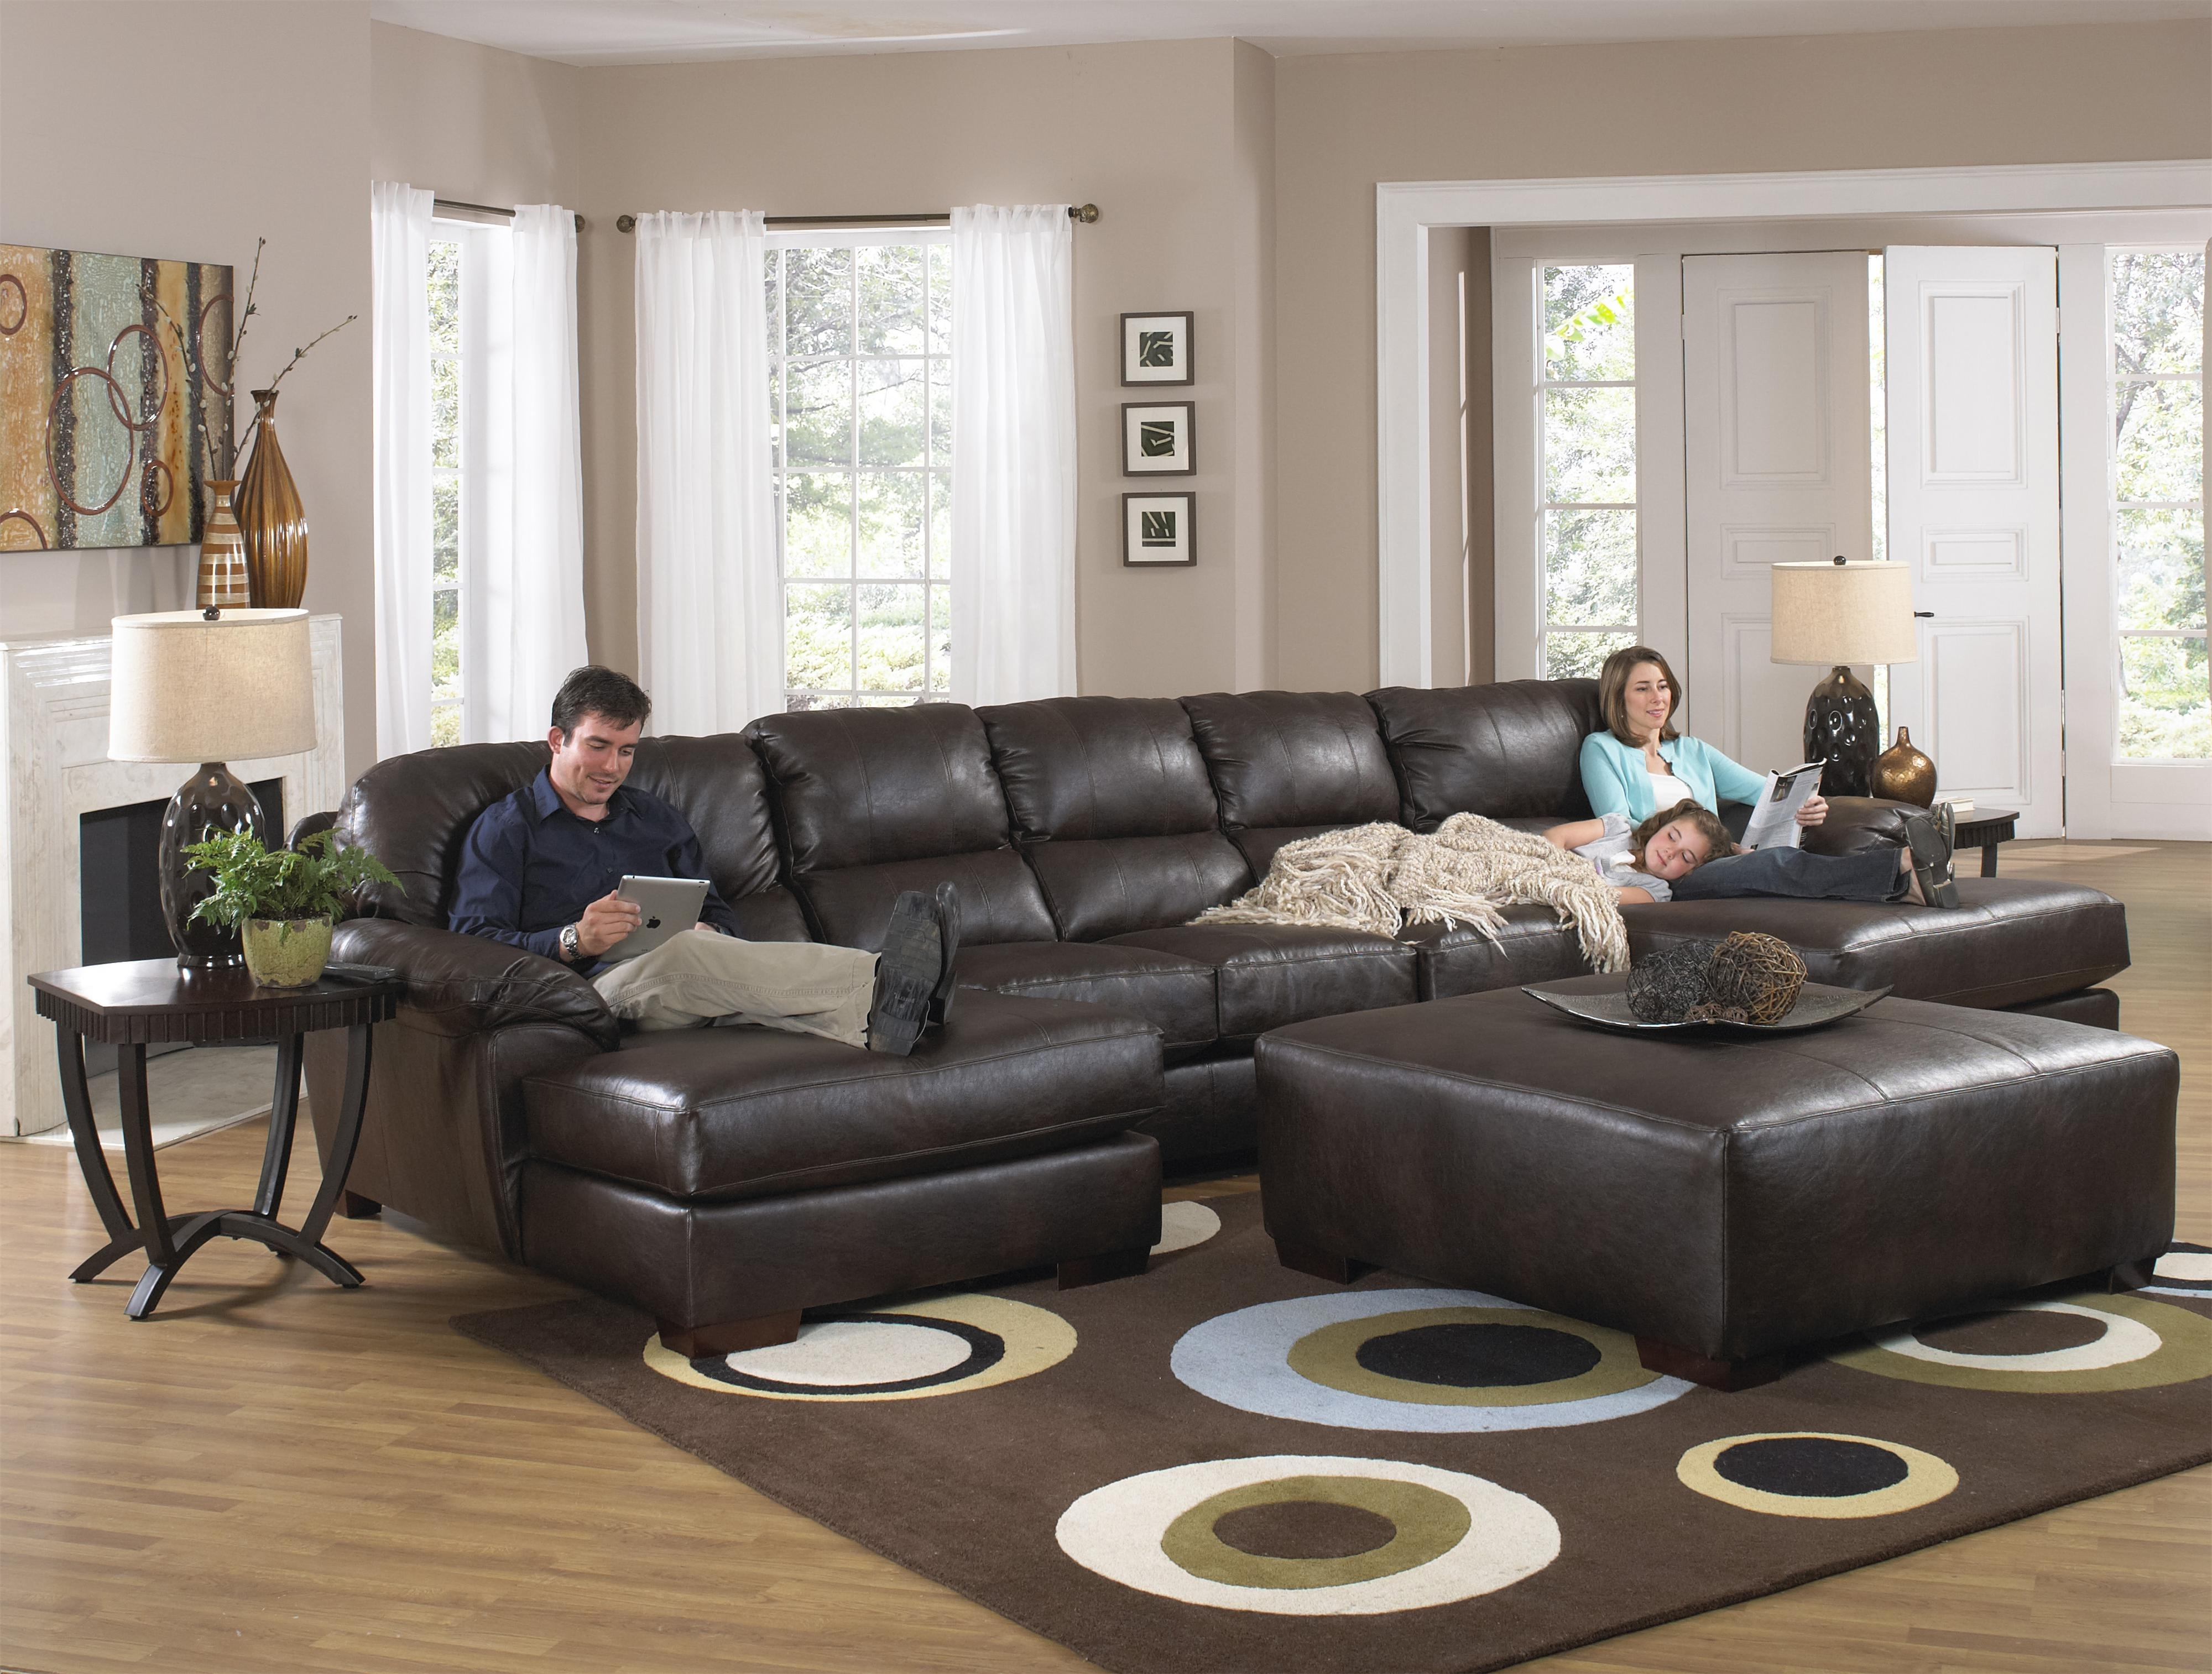 Most Recently Released Sofa : Beautiful Large Sectional Sofa With Chaise L Shaped Cream Intended For 10X8 Sectional Sofas (View 18 of 20)